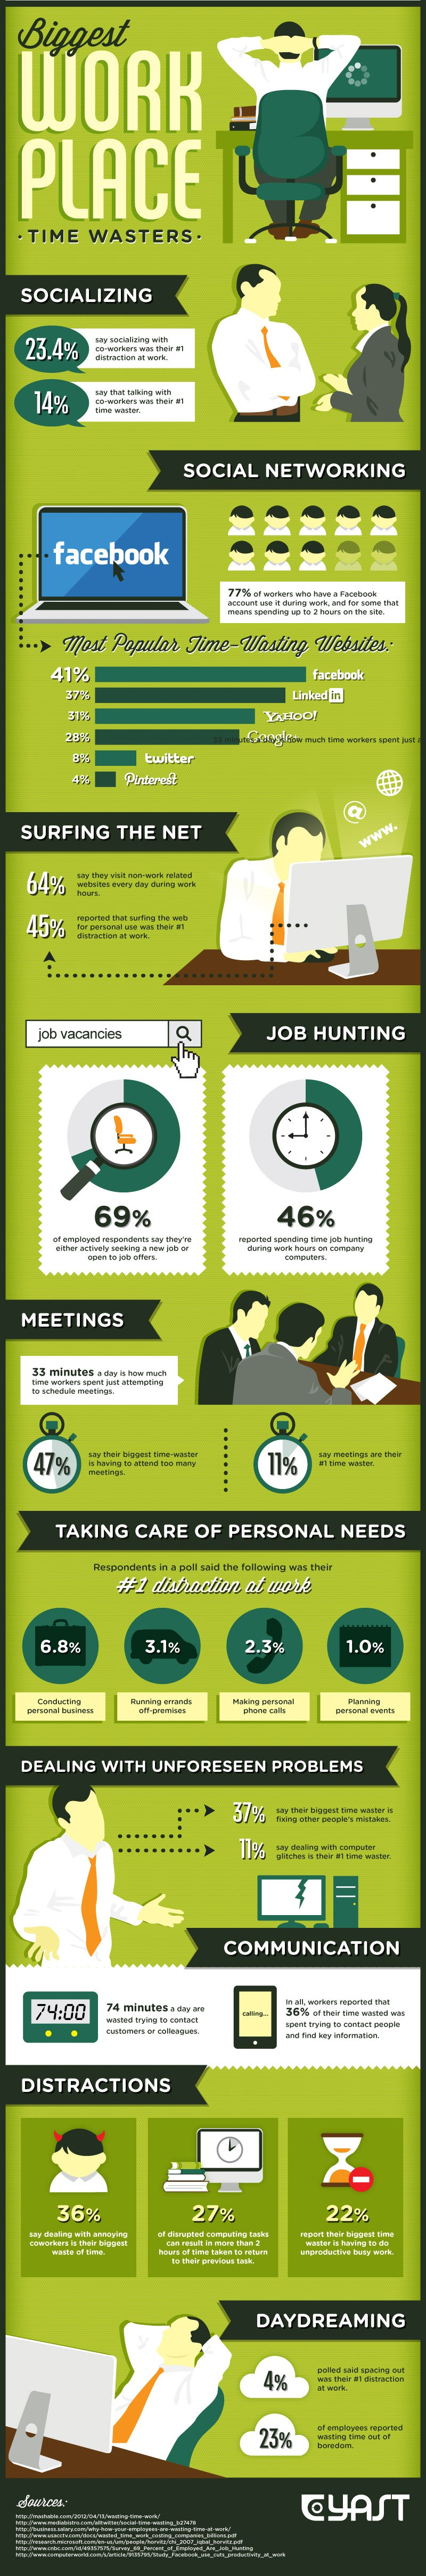 Are You Guilty of These Common Workplace Time Wasters? (Infographic)